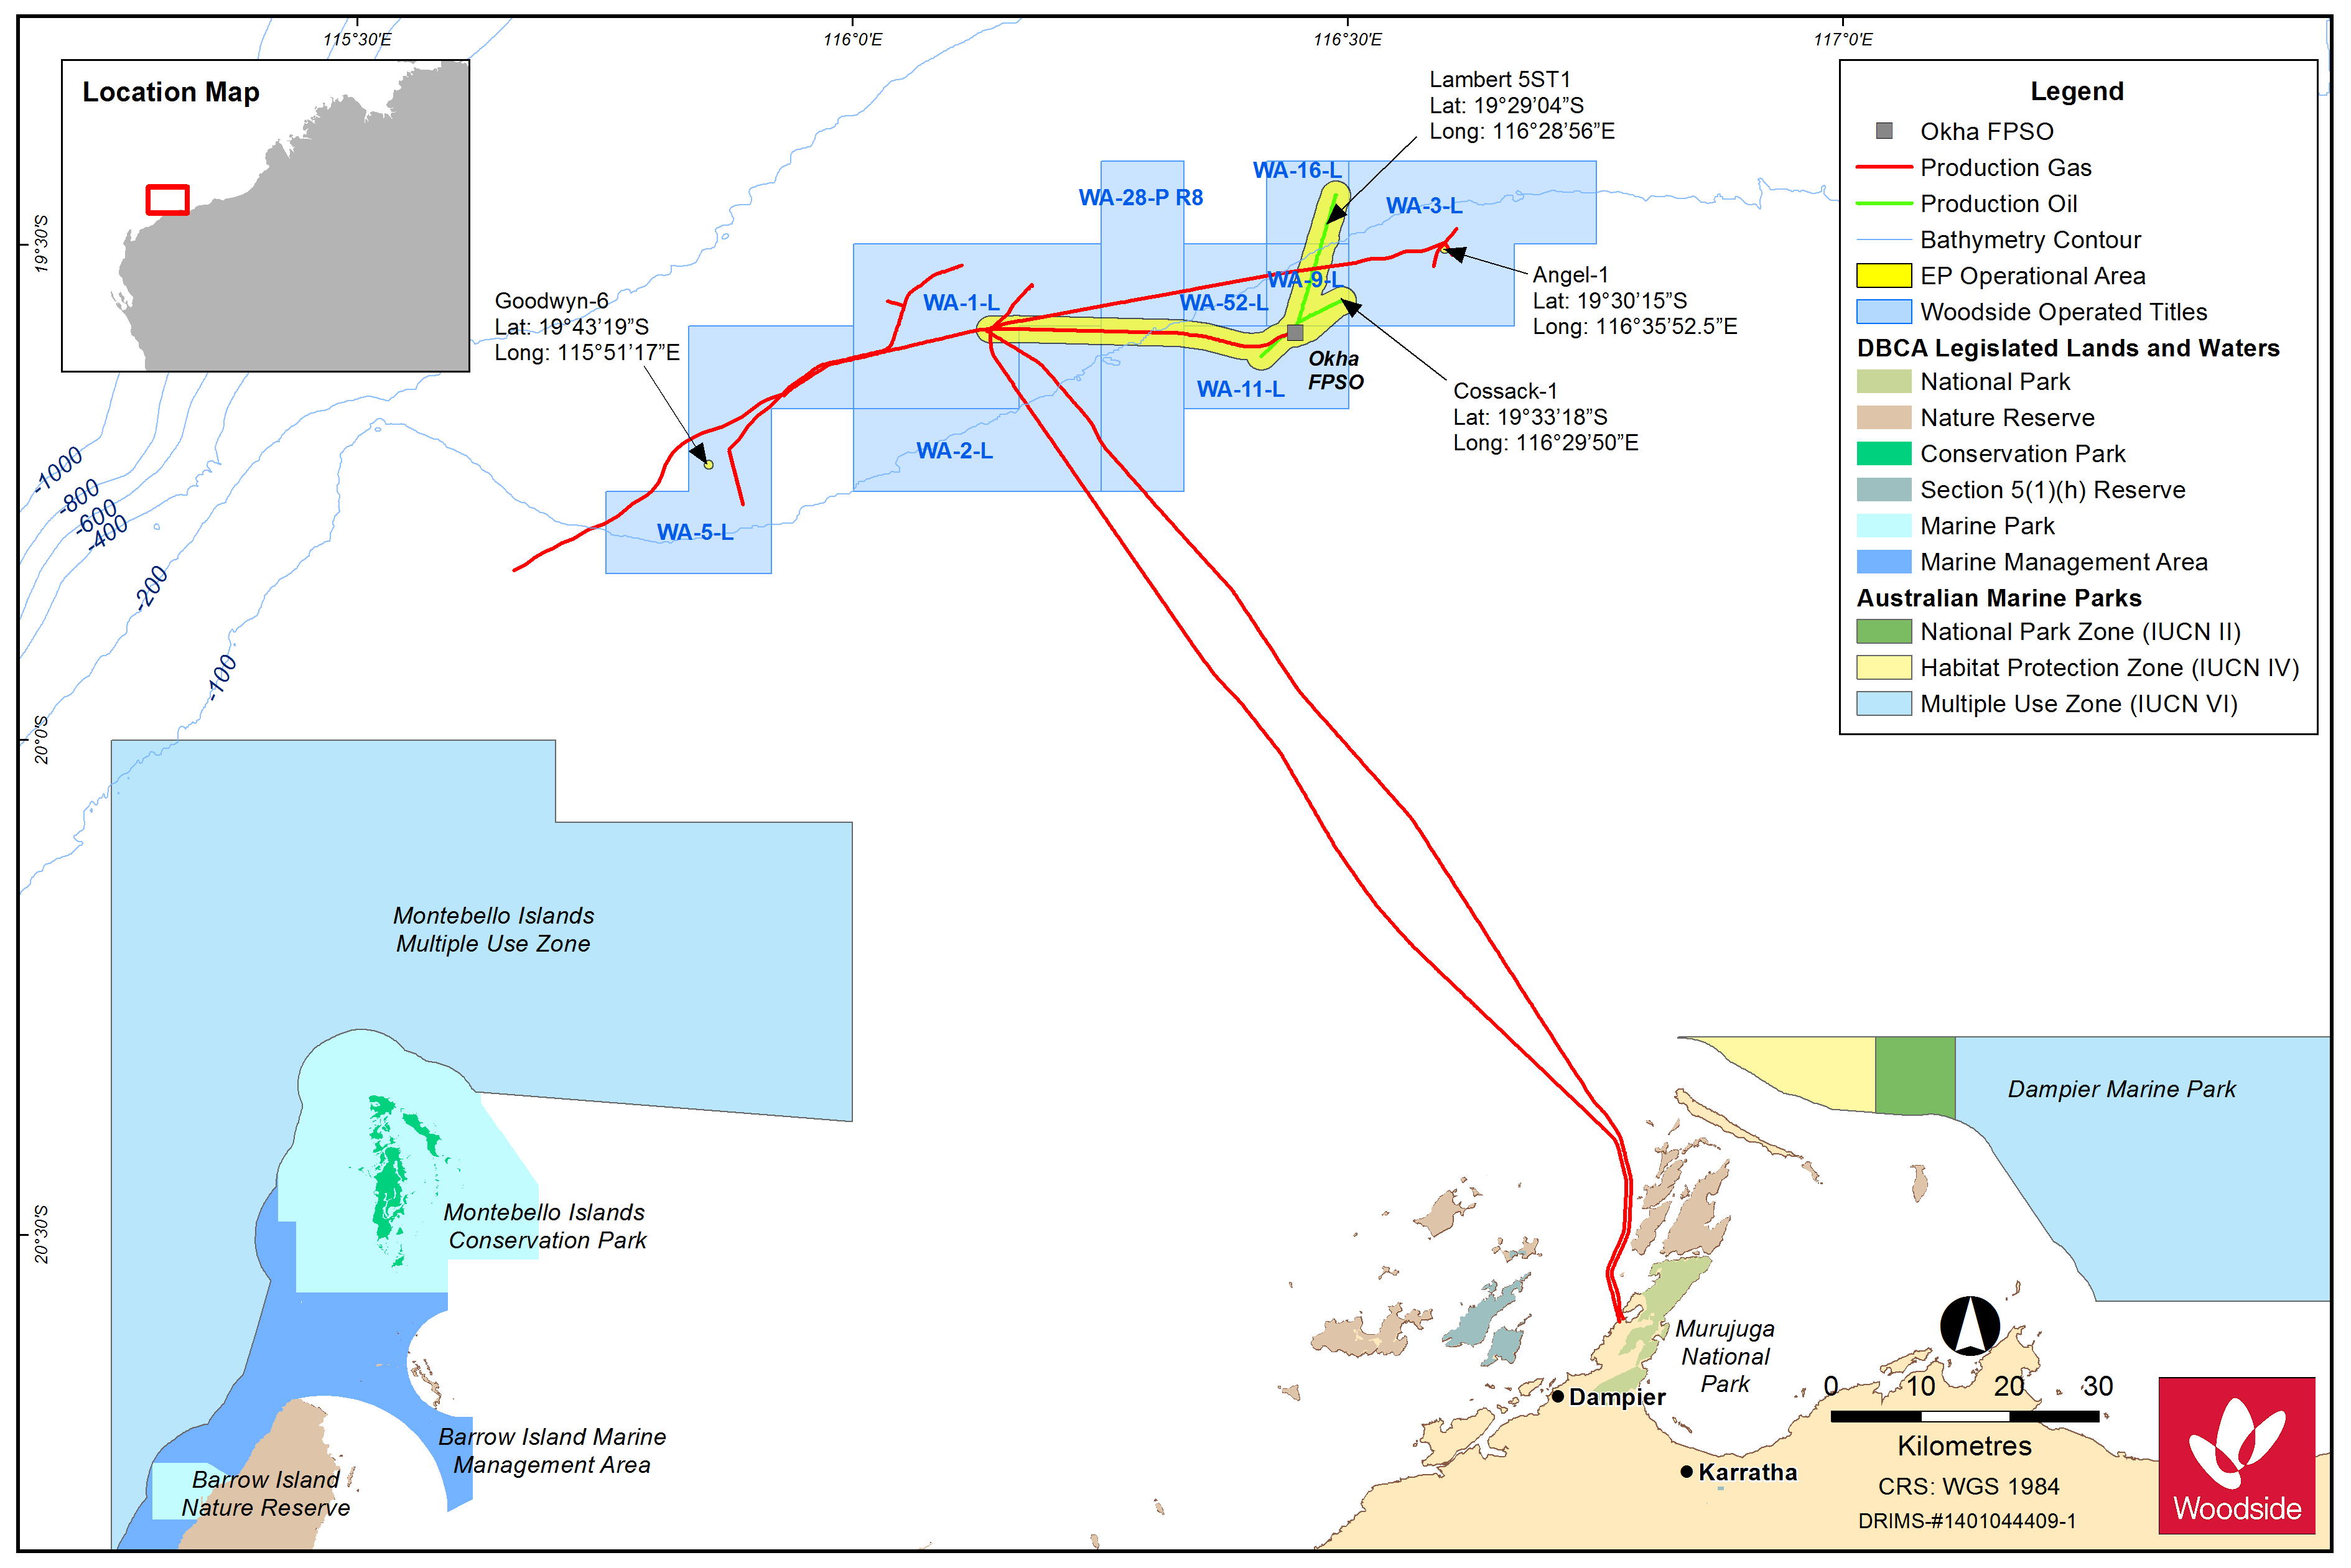 Location map - Activity: OKHA Floating Production Storage and Offloading Facility Operations (refer to description)